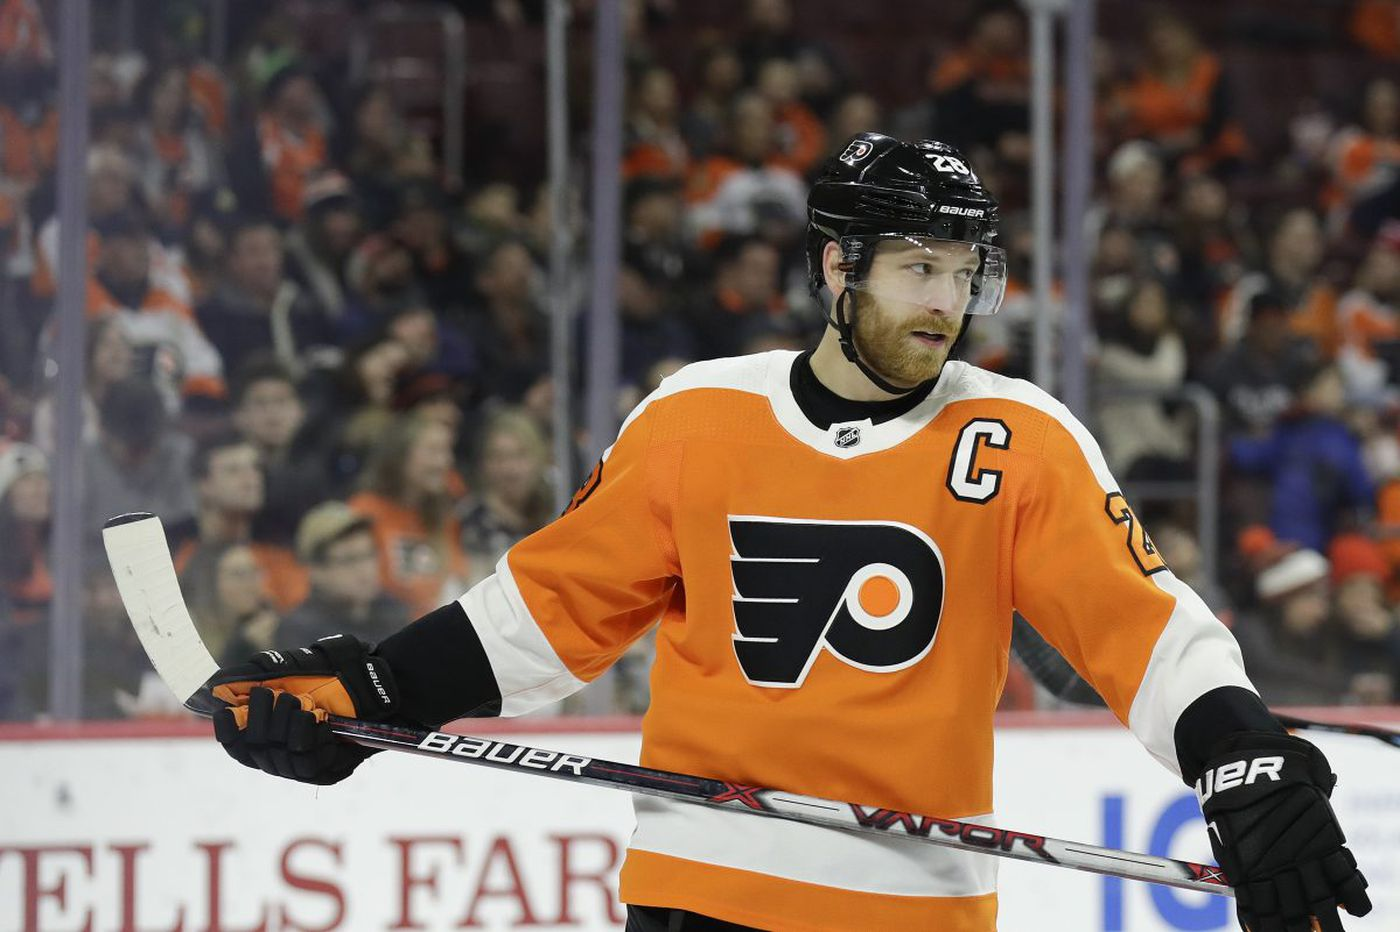 """Claude Giroux on passing Eric Lindros: """"It's pretty special"""""""